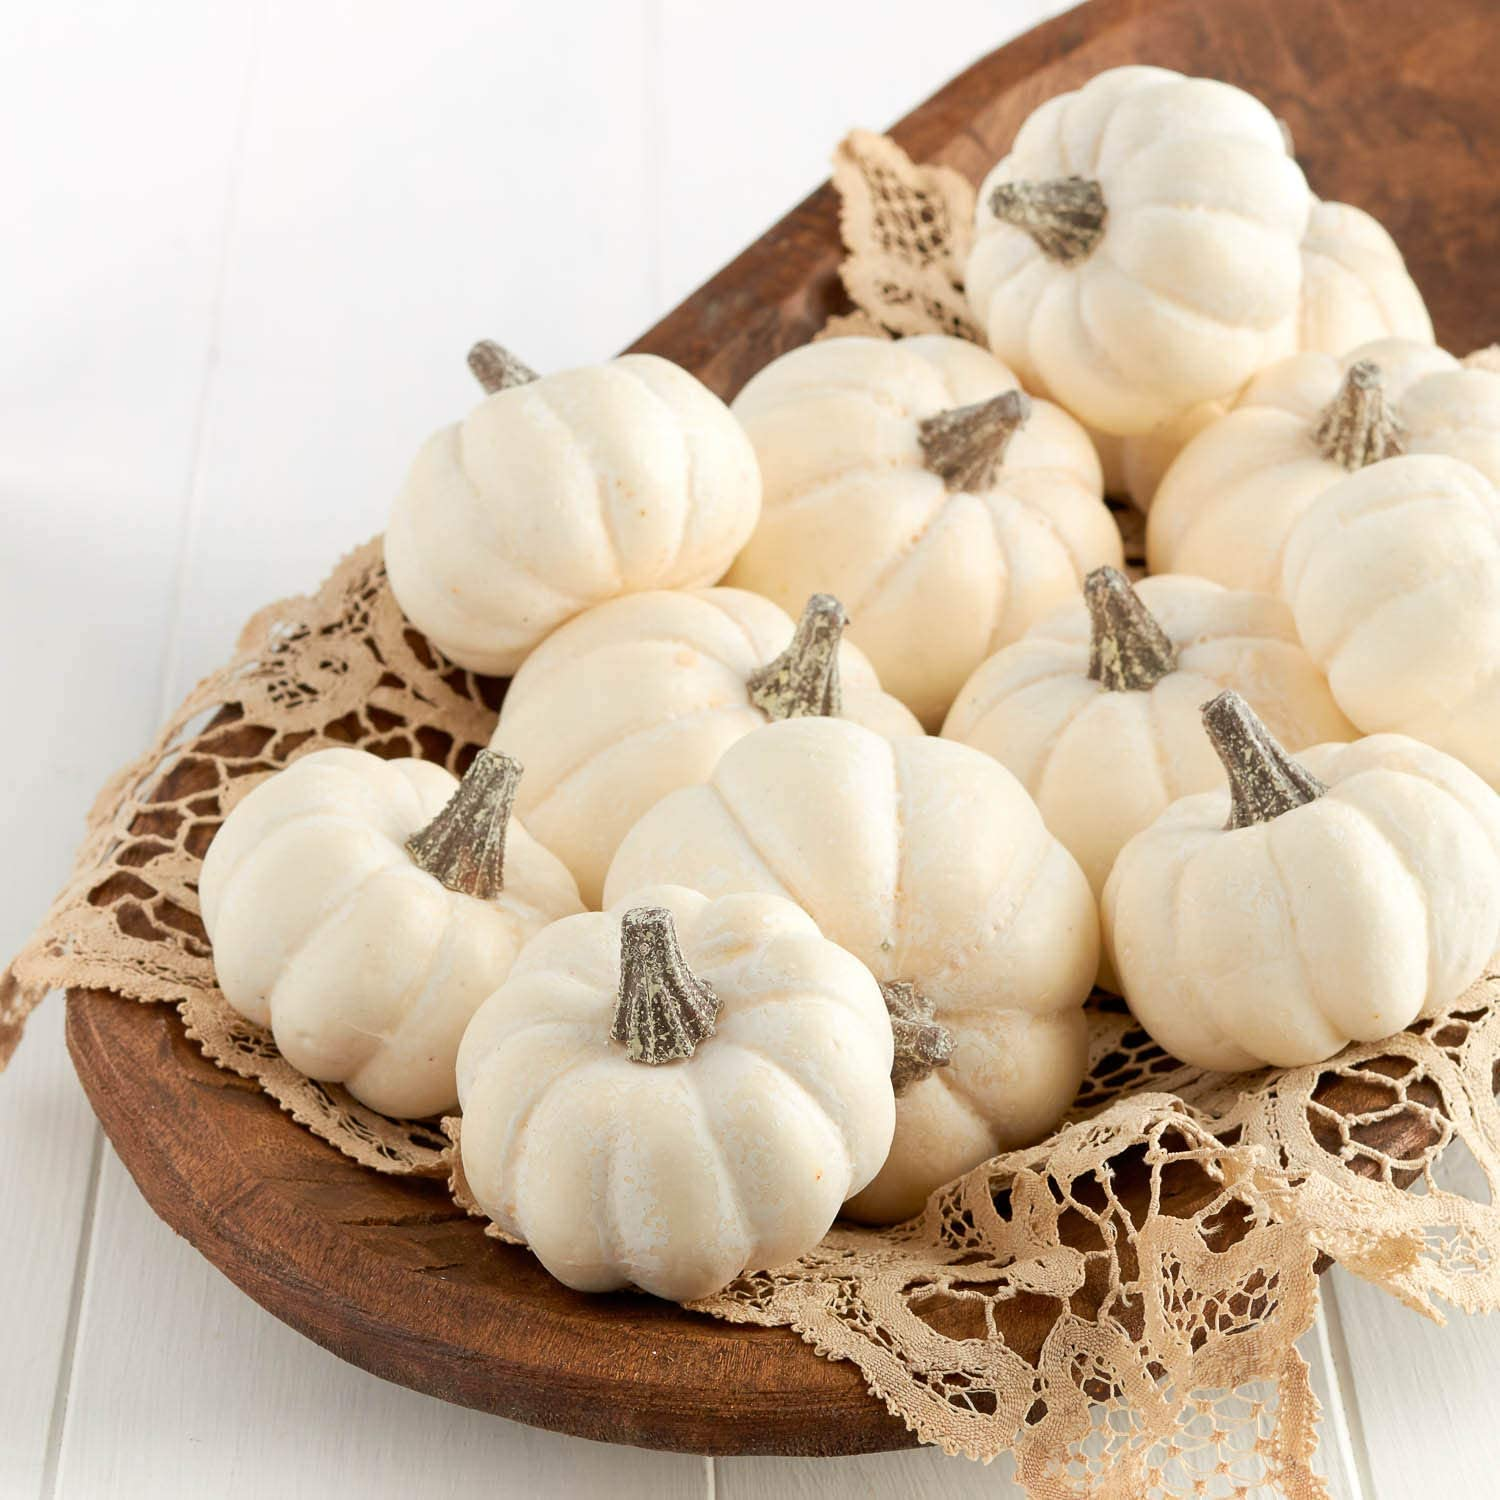 Factory Direct Craft 12 Small Off White Baby Boo Artificial Pumpkins for Halloween, Fall and Thanksgiving Decorating